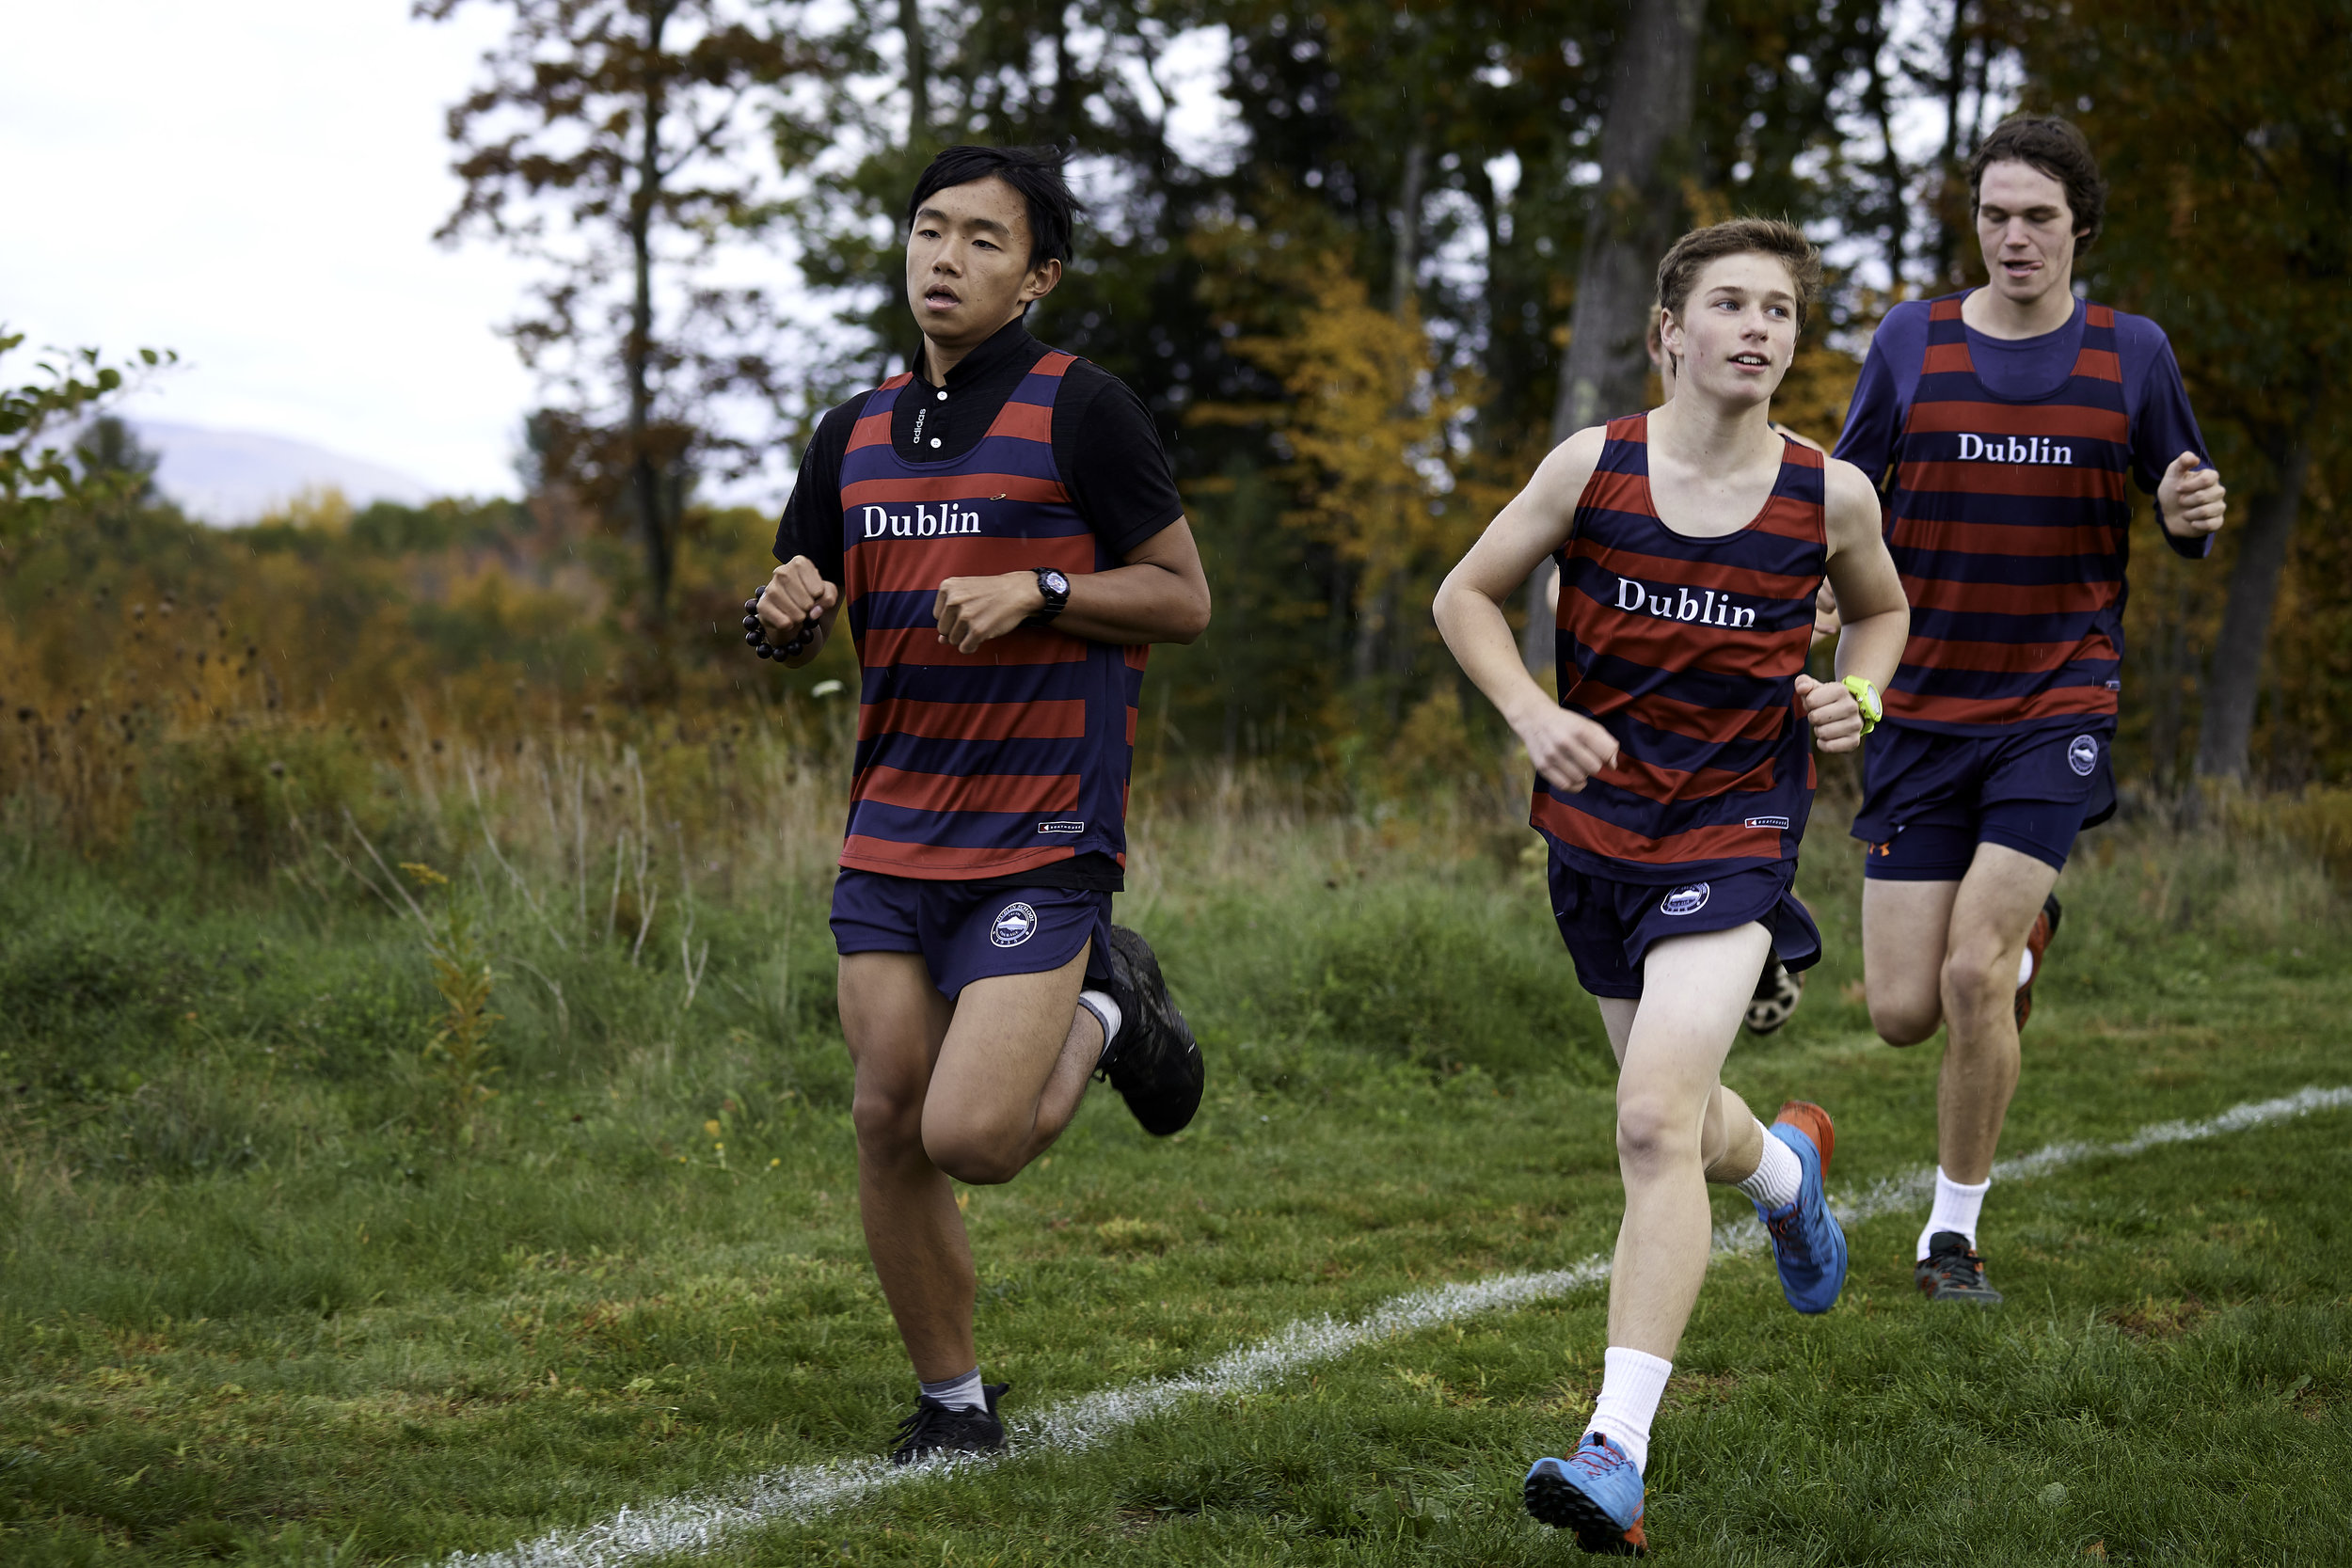 Dublion Invitational - October 12, 2018 - 136465.jpg